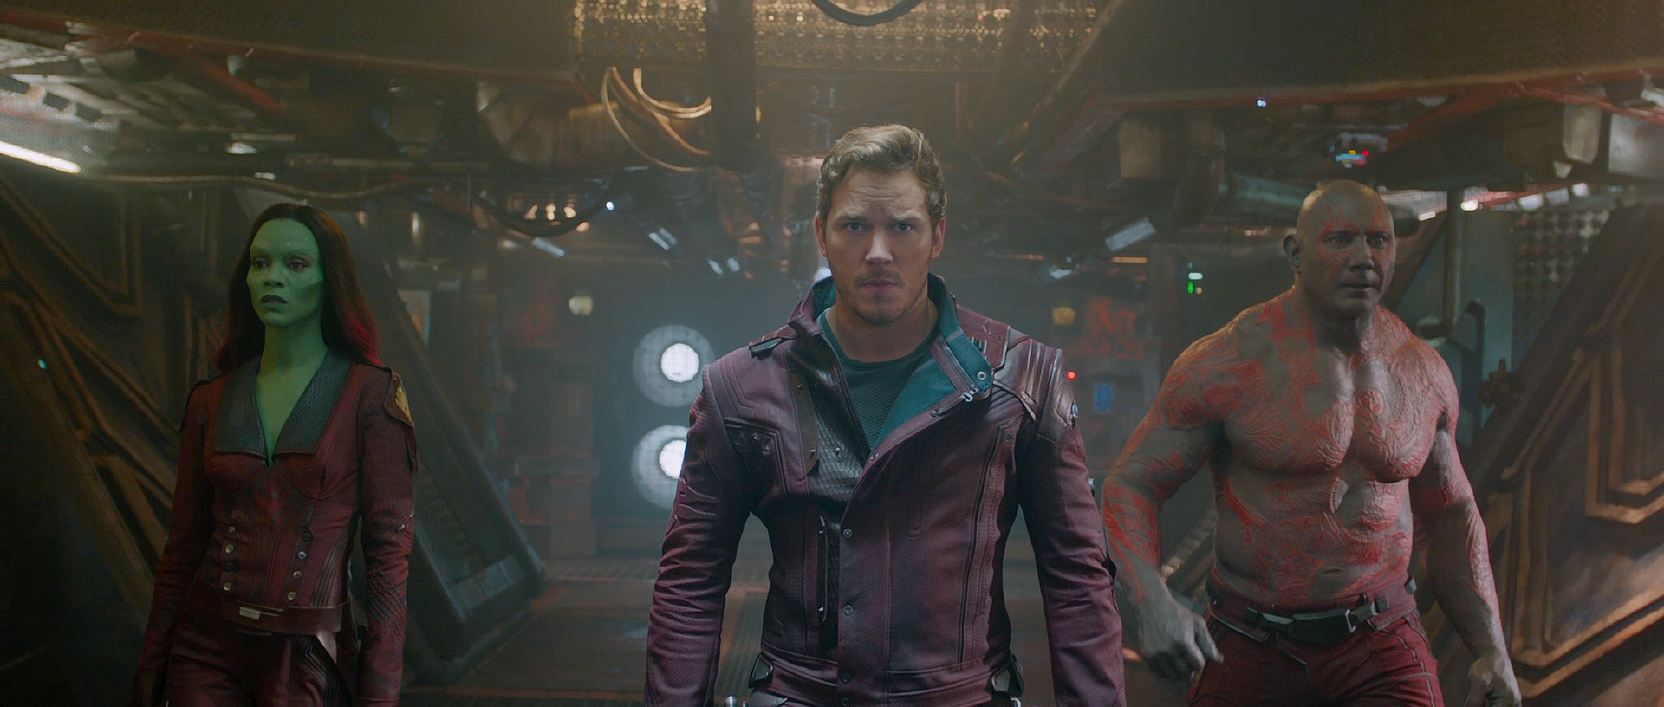 GOTG Trailer Screengrabs Marvel movies, Guardians of the